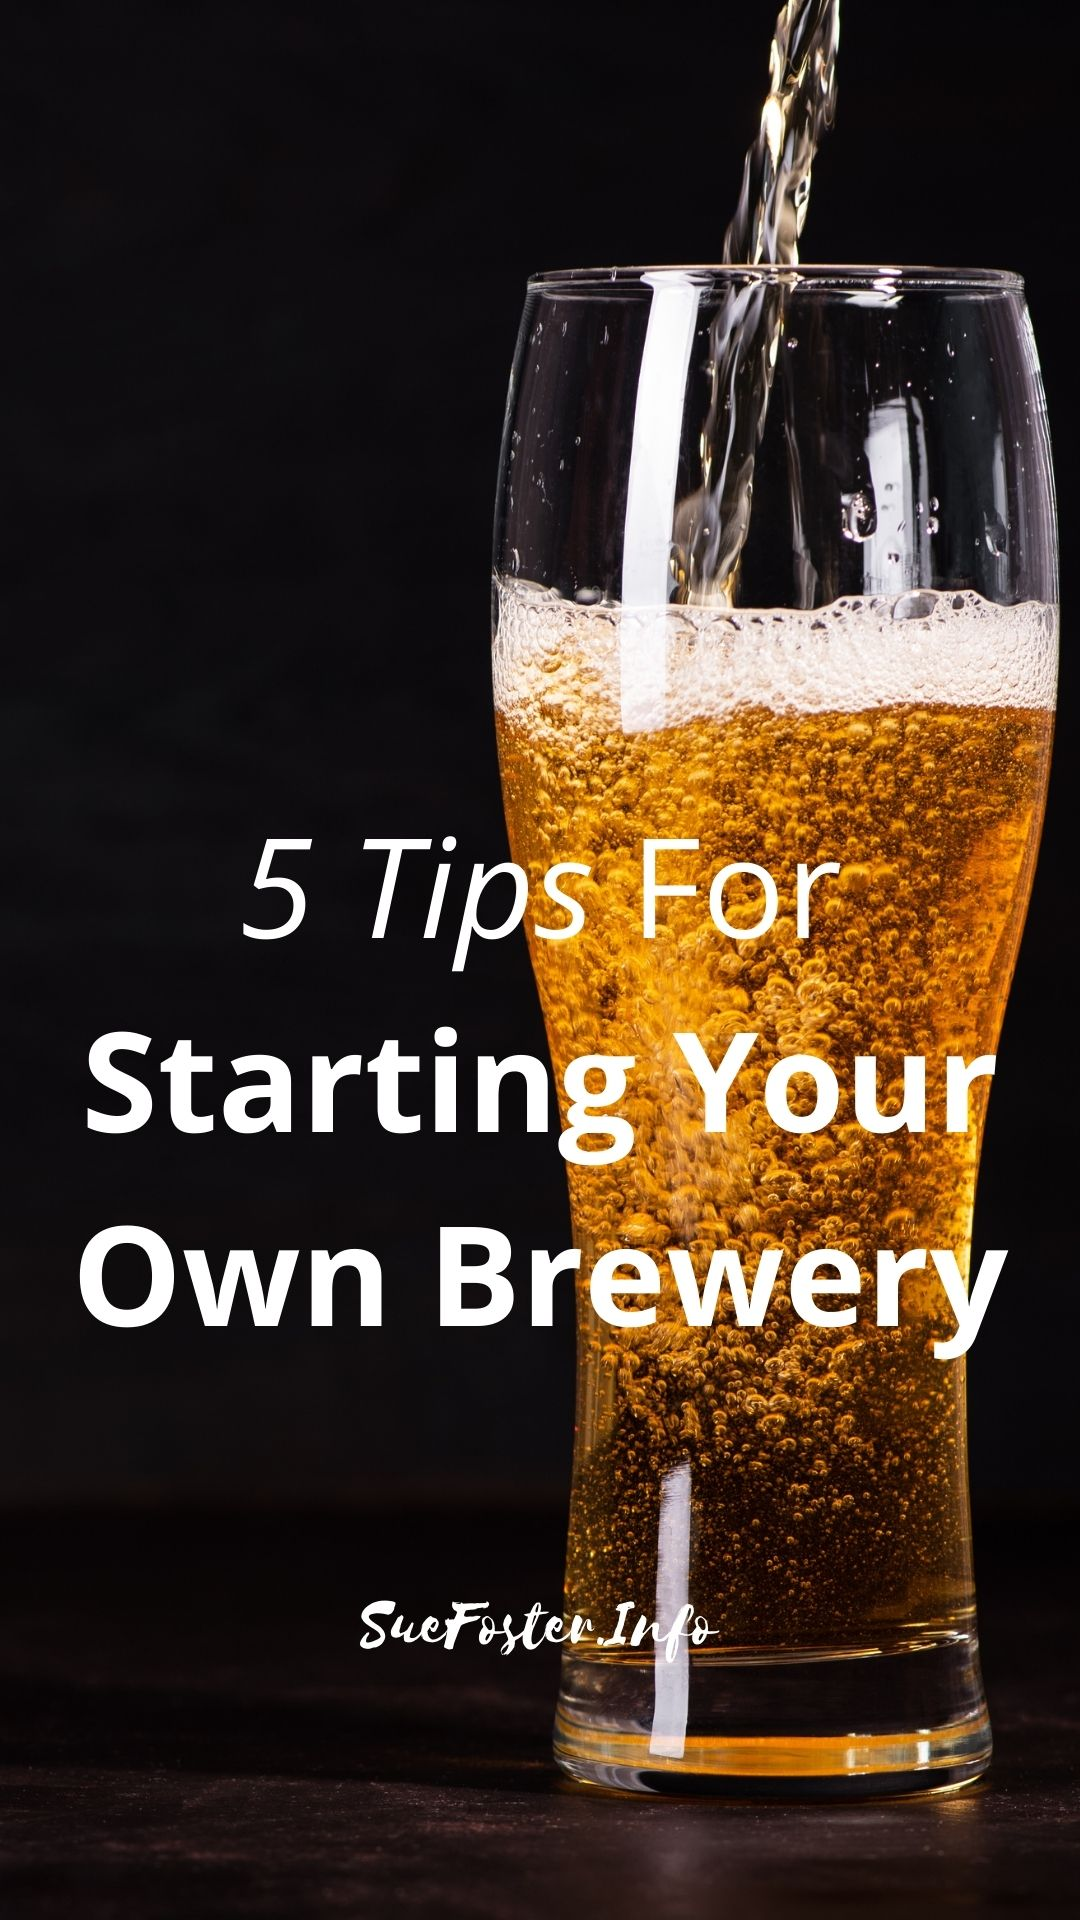 If the idea of setting up your own nano or micro-brewery sounds like heaven, then check out these tips.